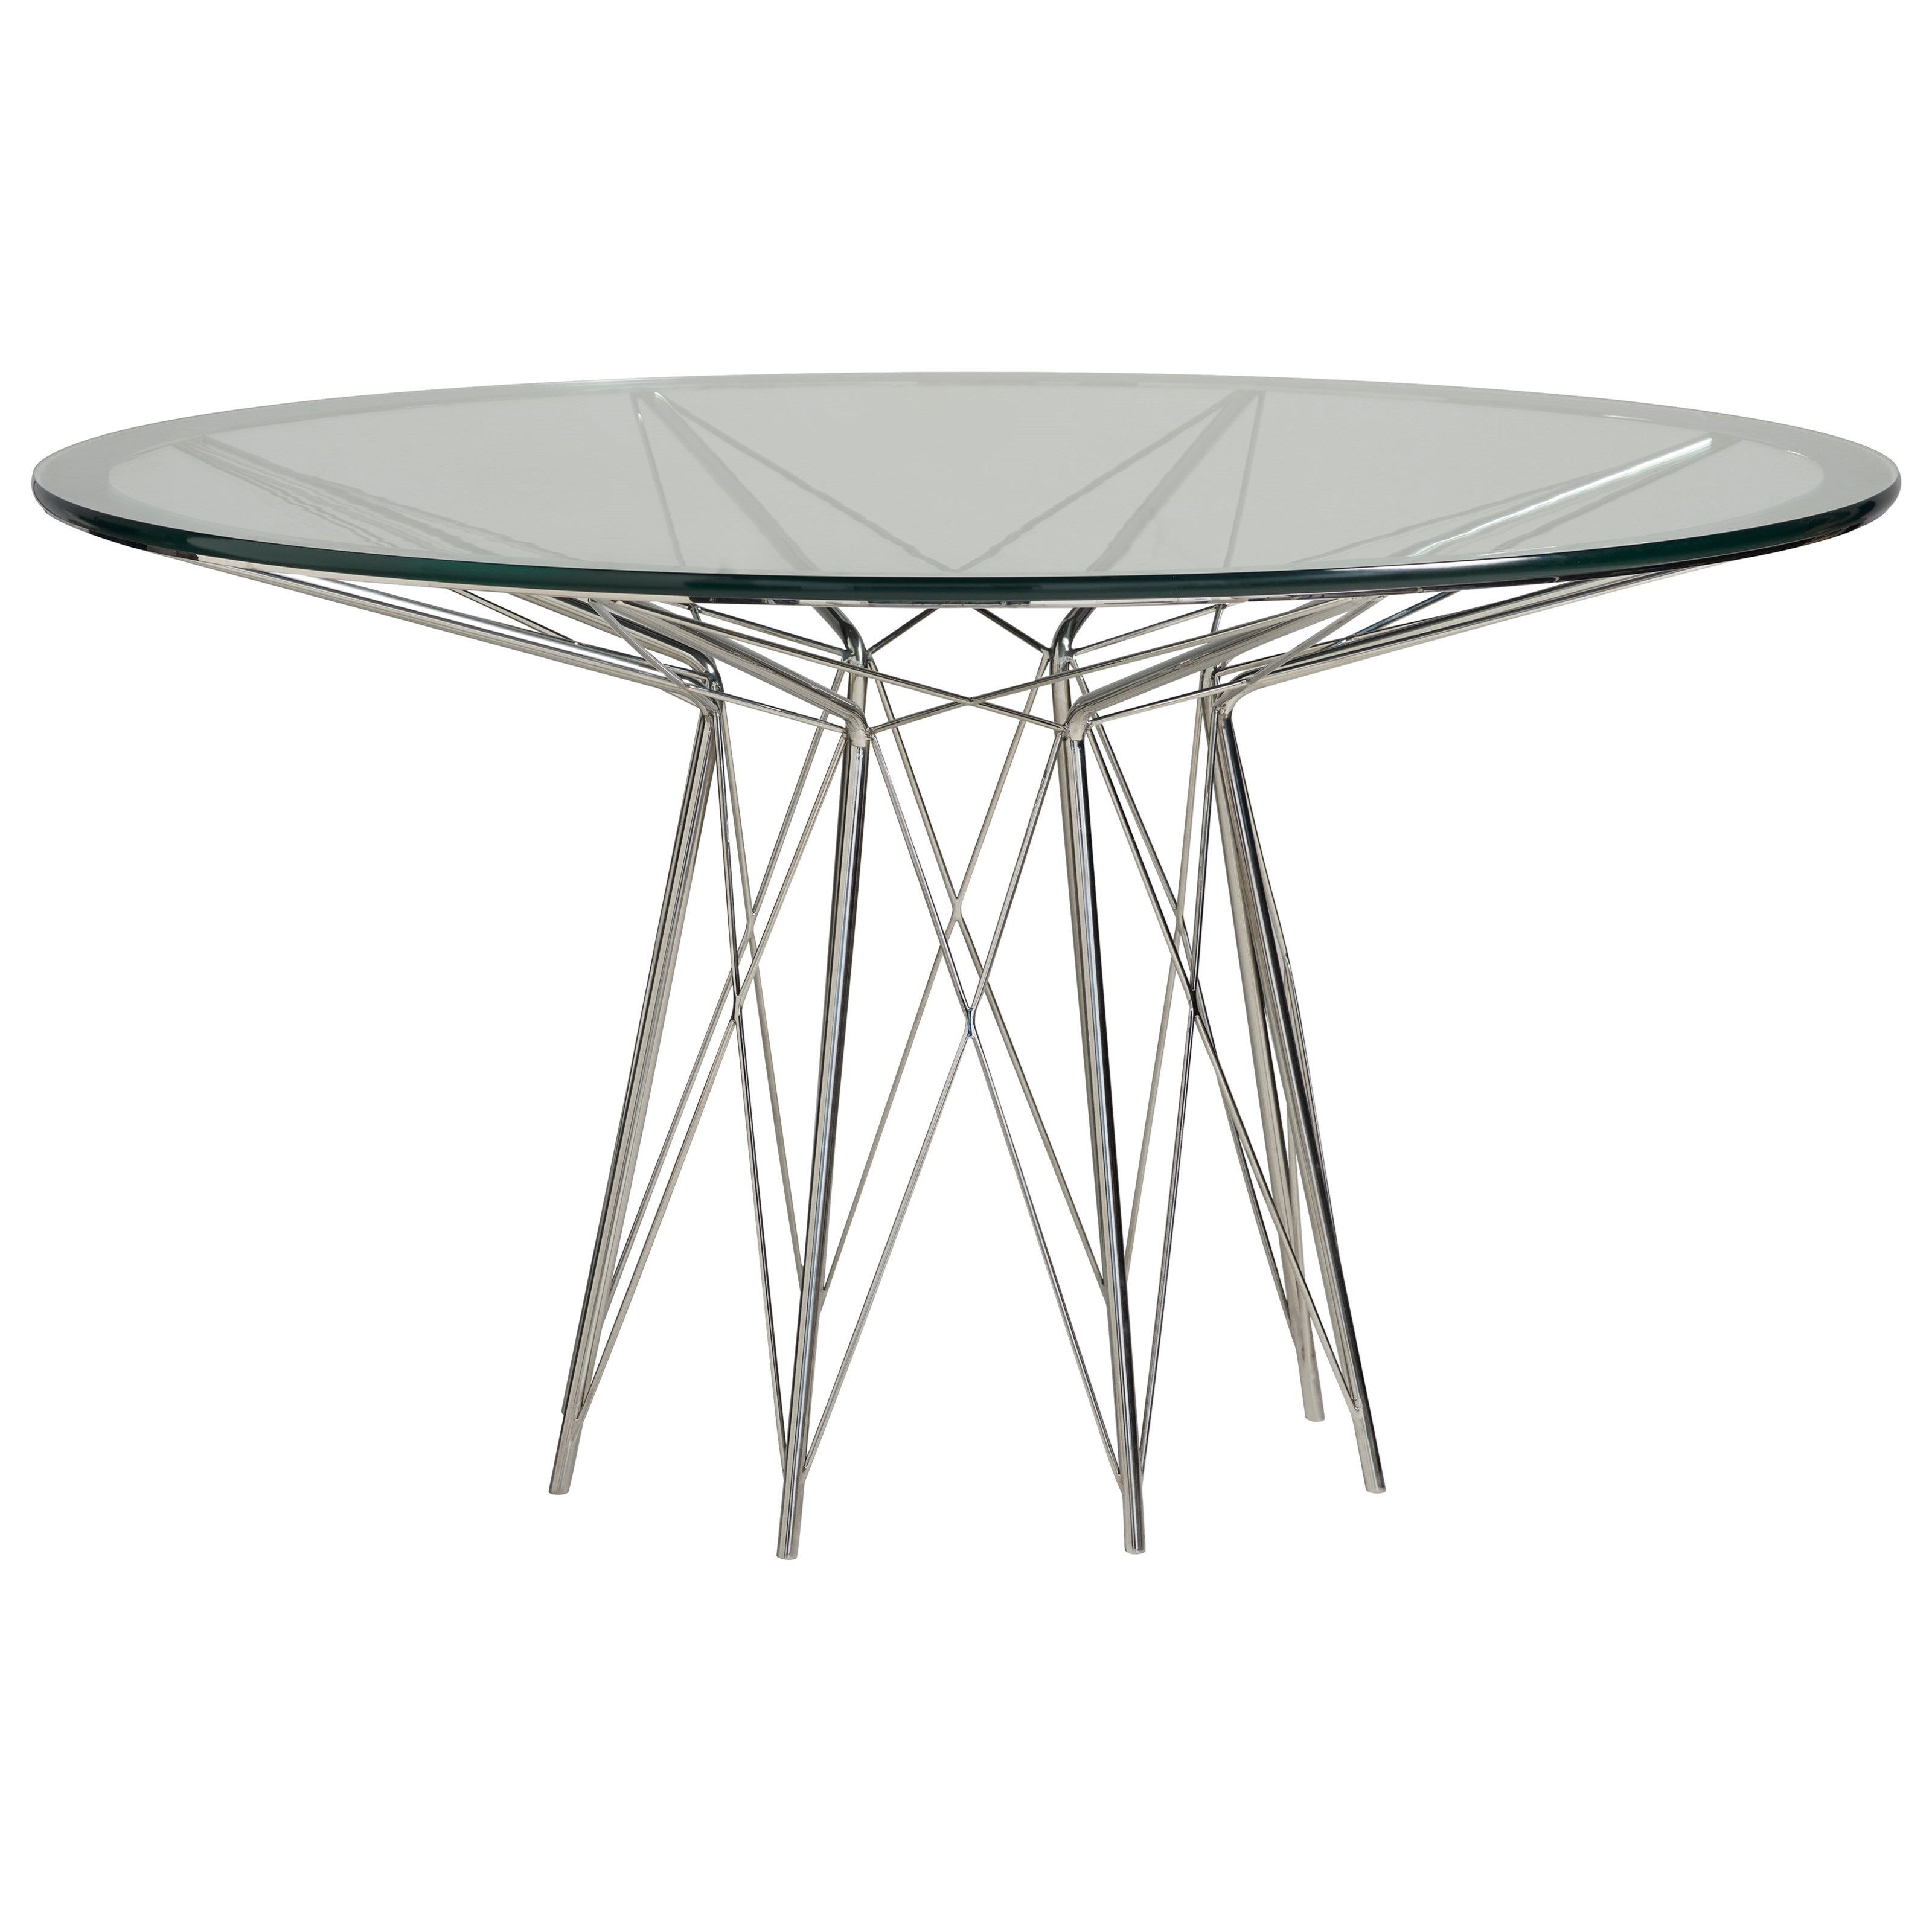 Modern Axel Round Dining Table by Universal at Baer's Furniture